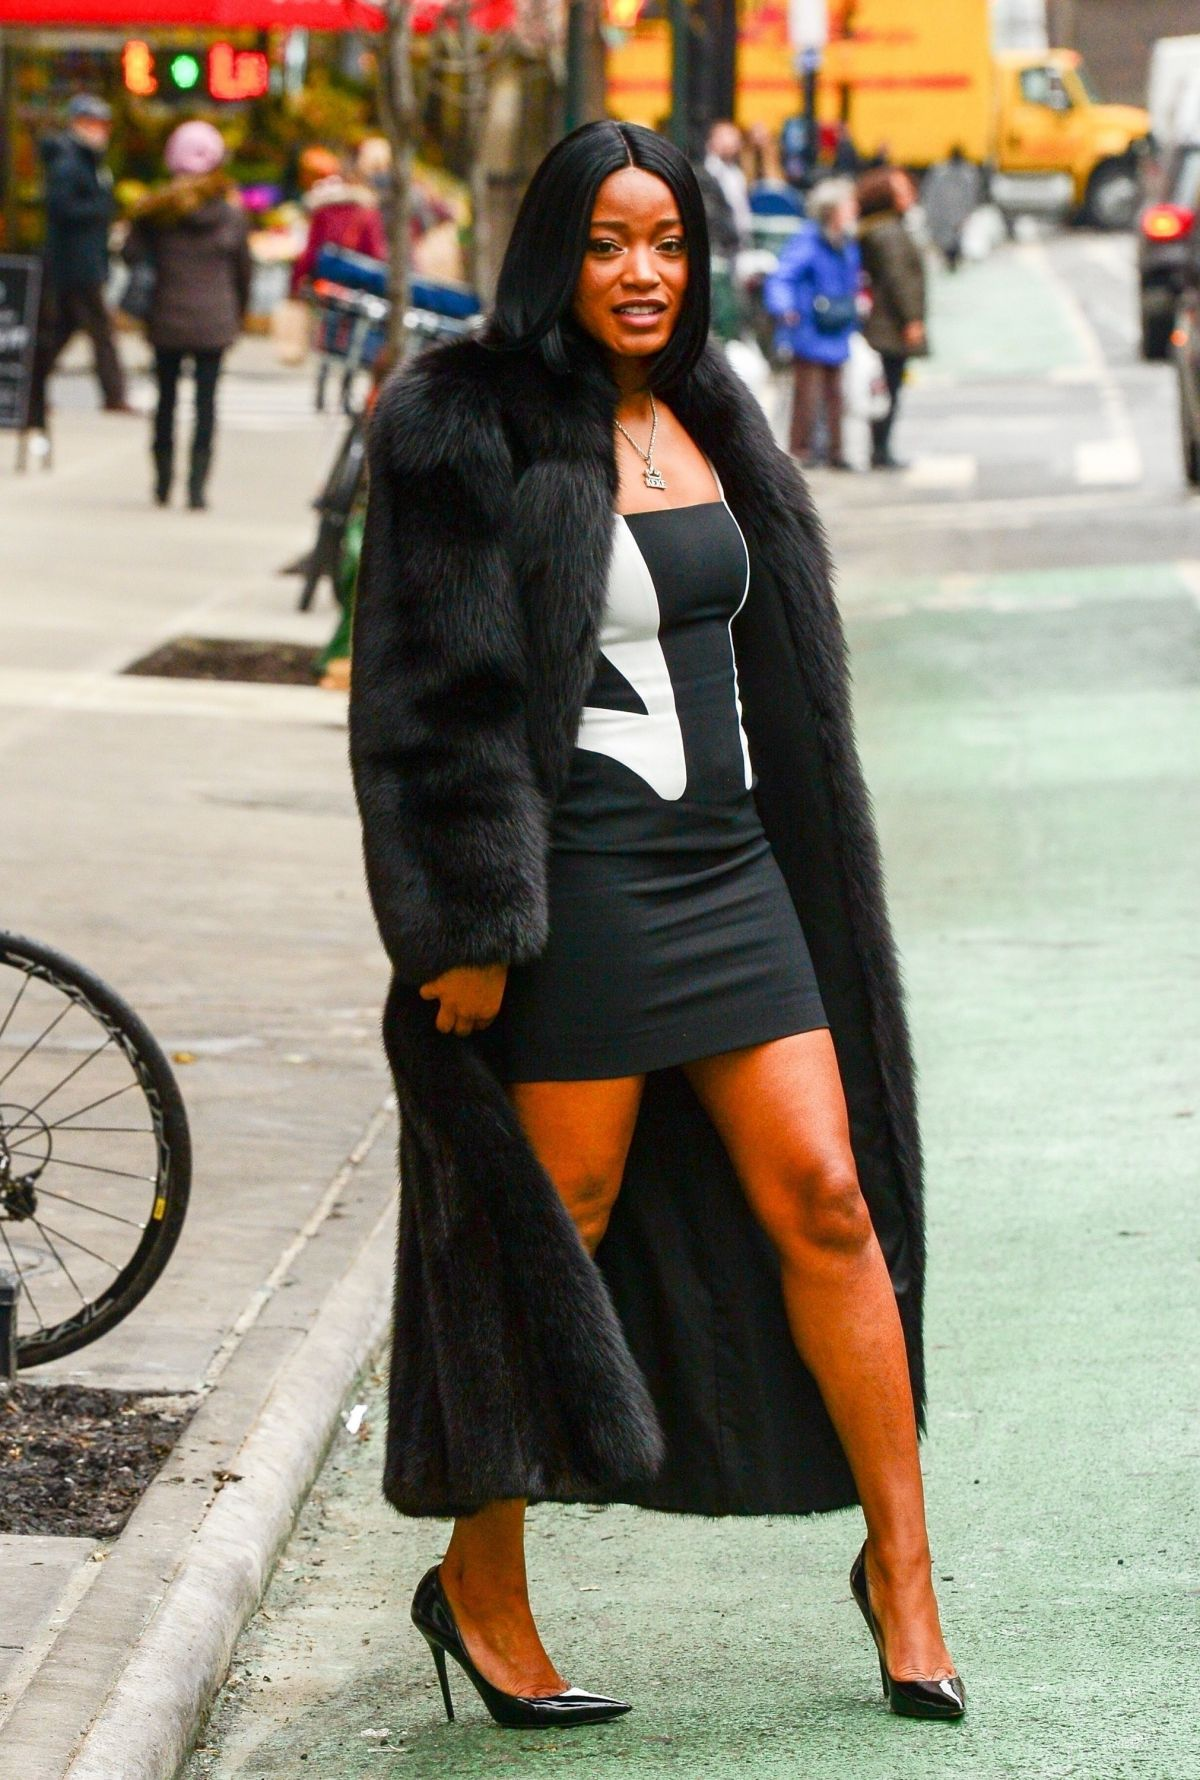 KEKE PALMER Out and About in New York 01/13/2018 - HawtCelebsKeke Palmer Rolling Out